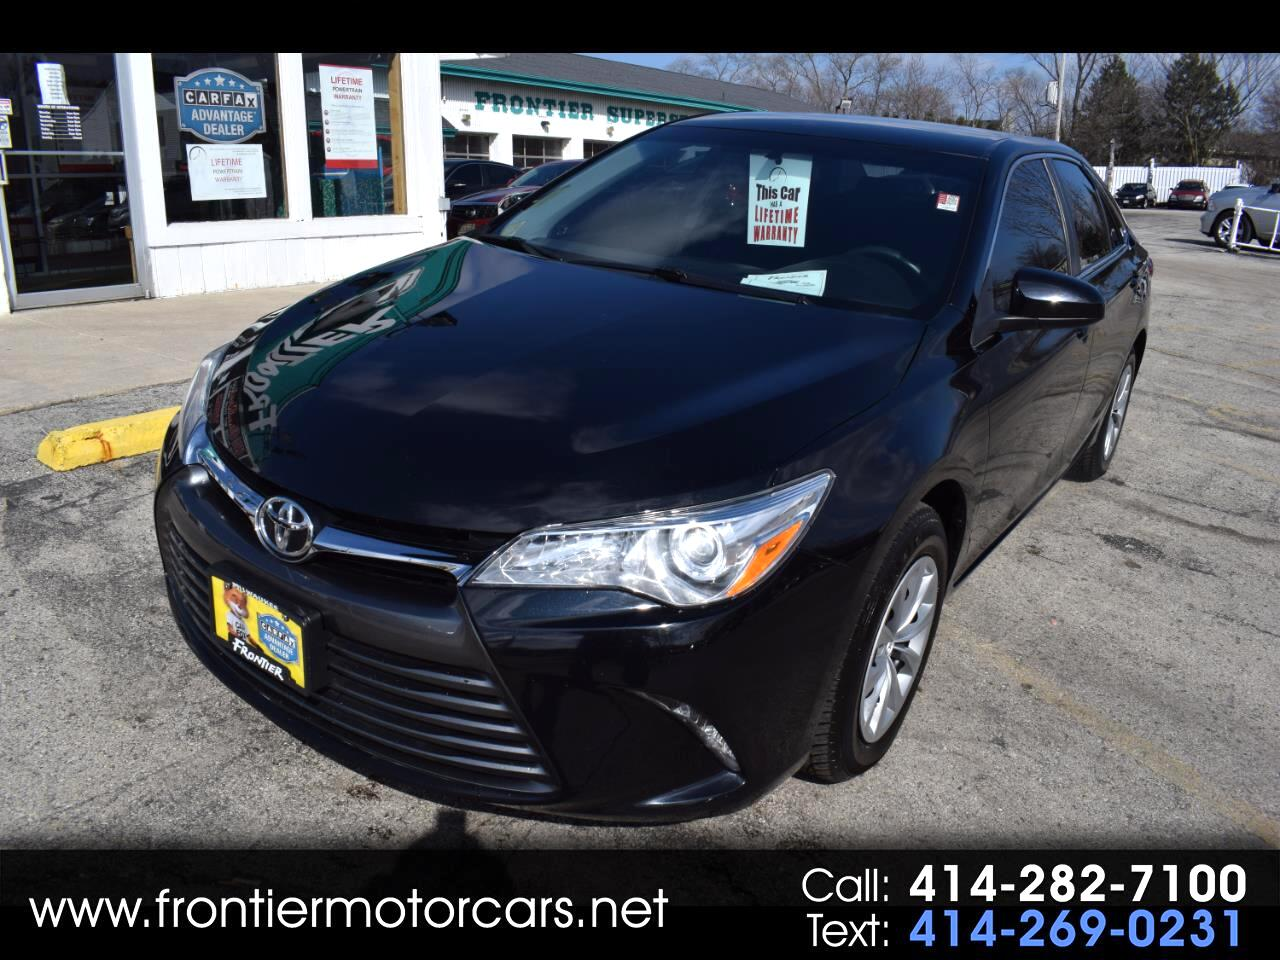 2016 Toyota Camry 2014.5 4dr Sdn I4 Auto LE (Natl)